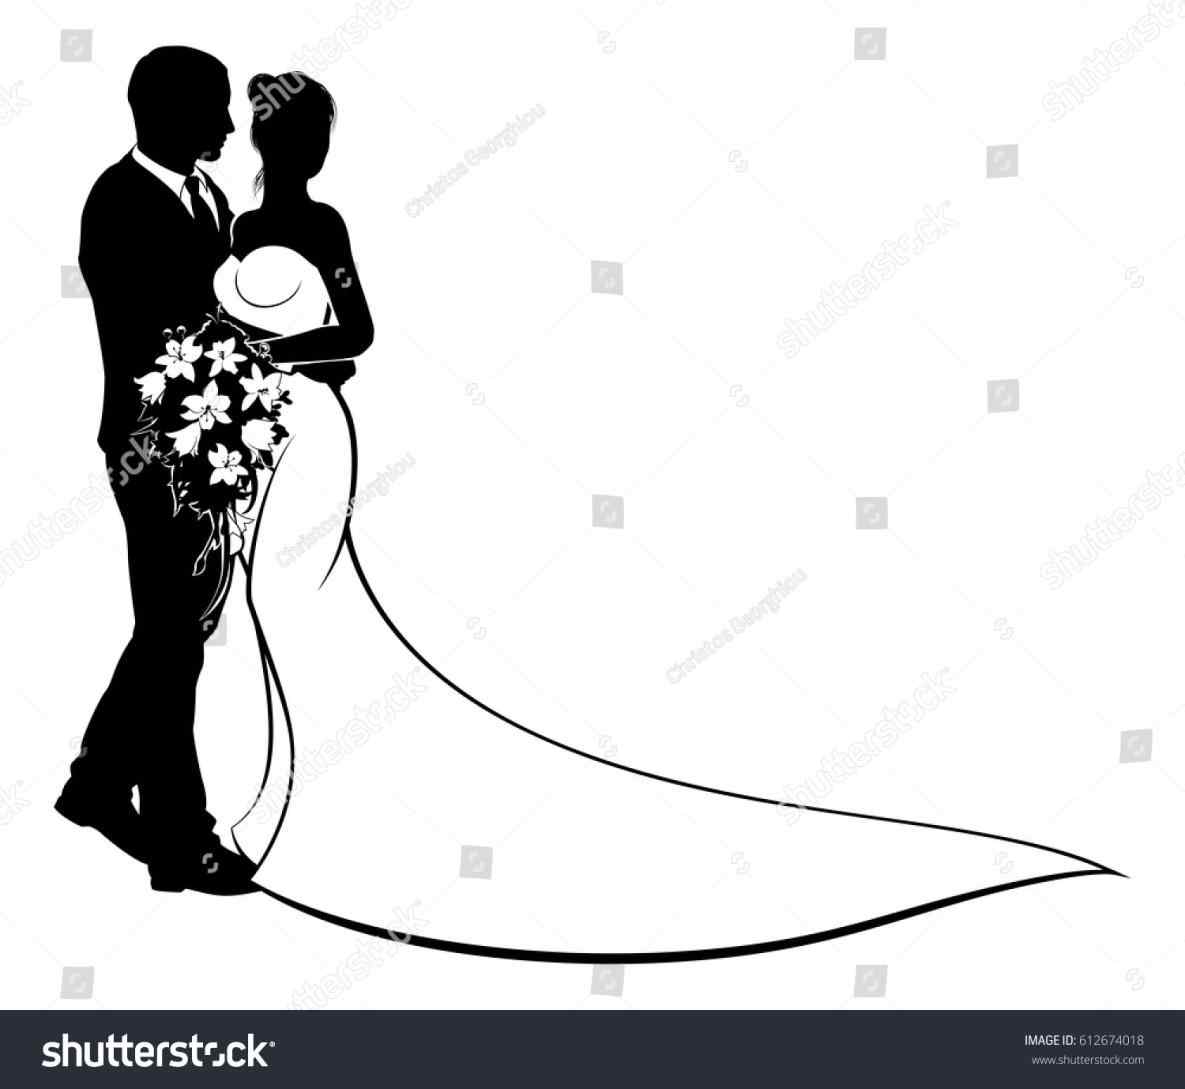 hight resolution of 1185x1089 bride groom silhouette png